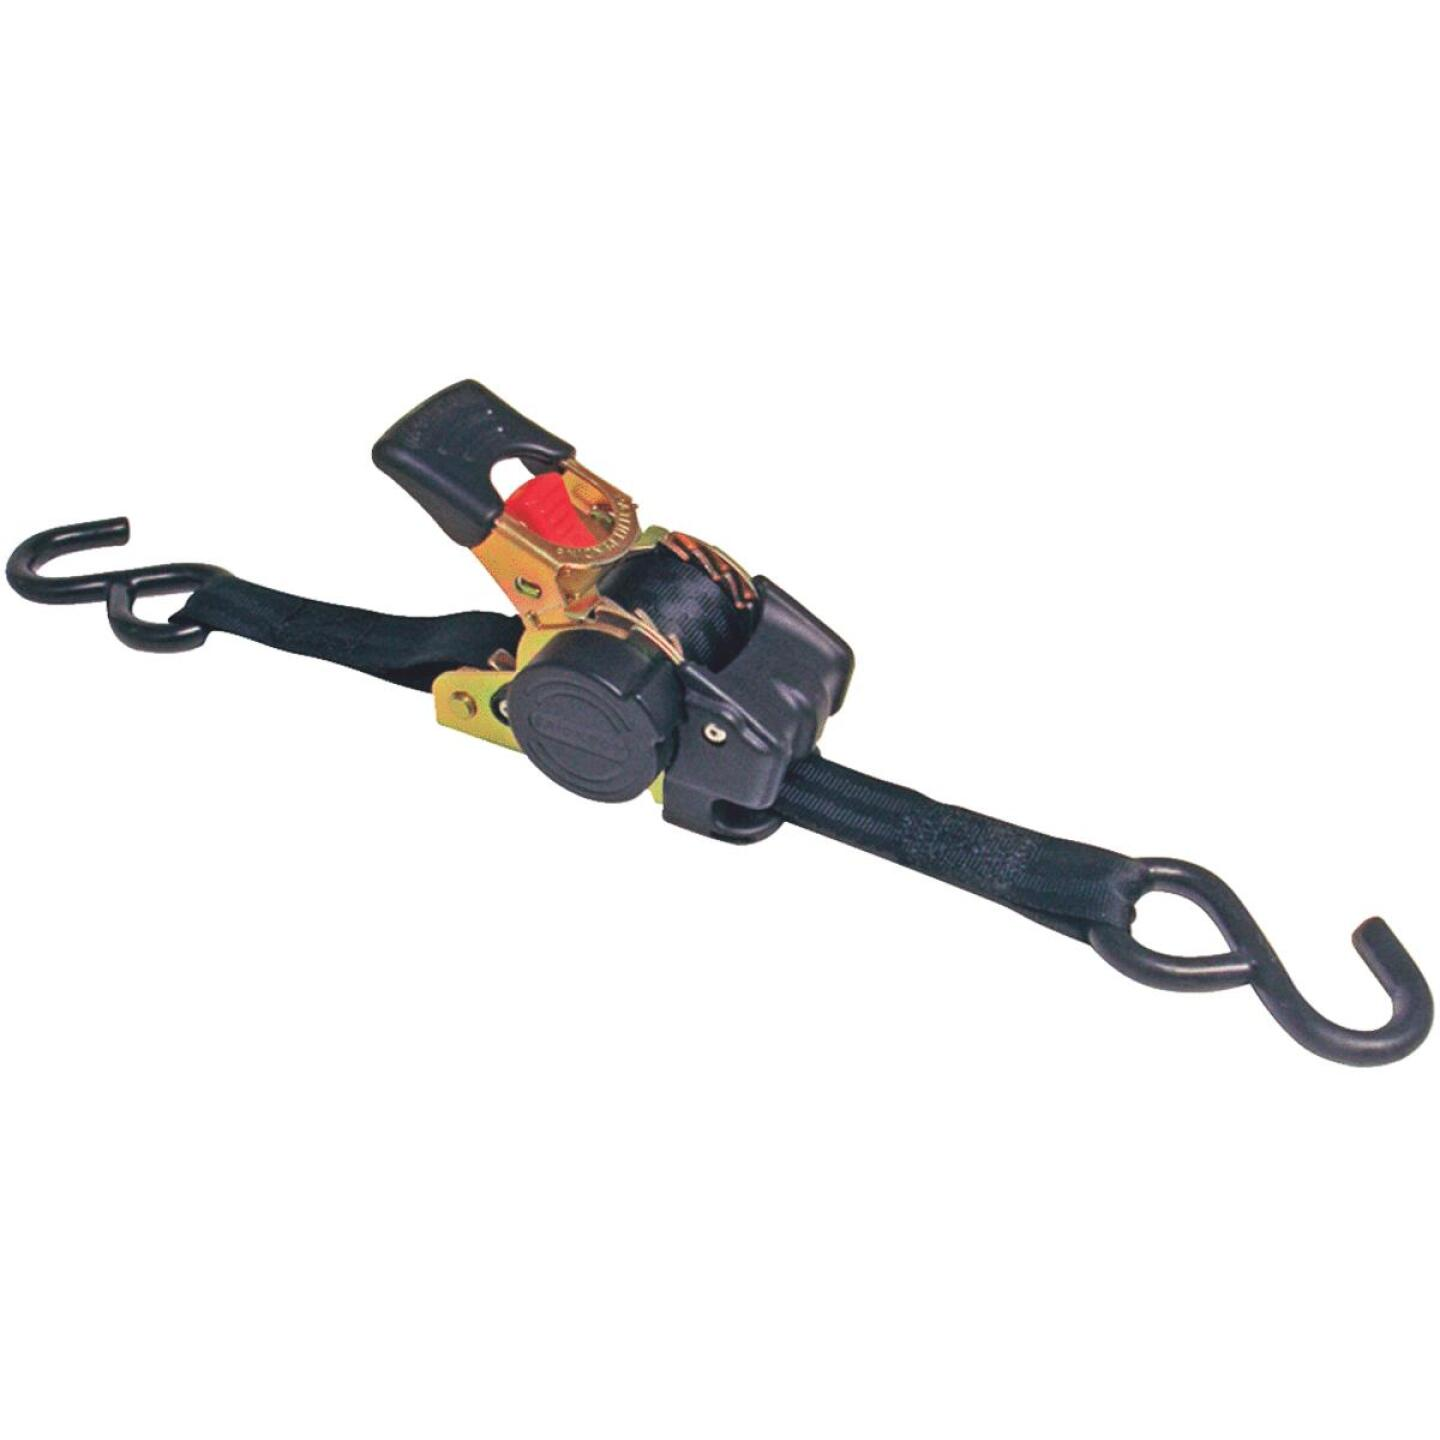 Erickson 1 In. x 10 Ft. 1200 Lb. Retractable Ratchet Strap (2-Pack) Image 1